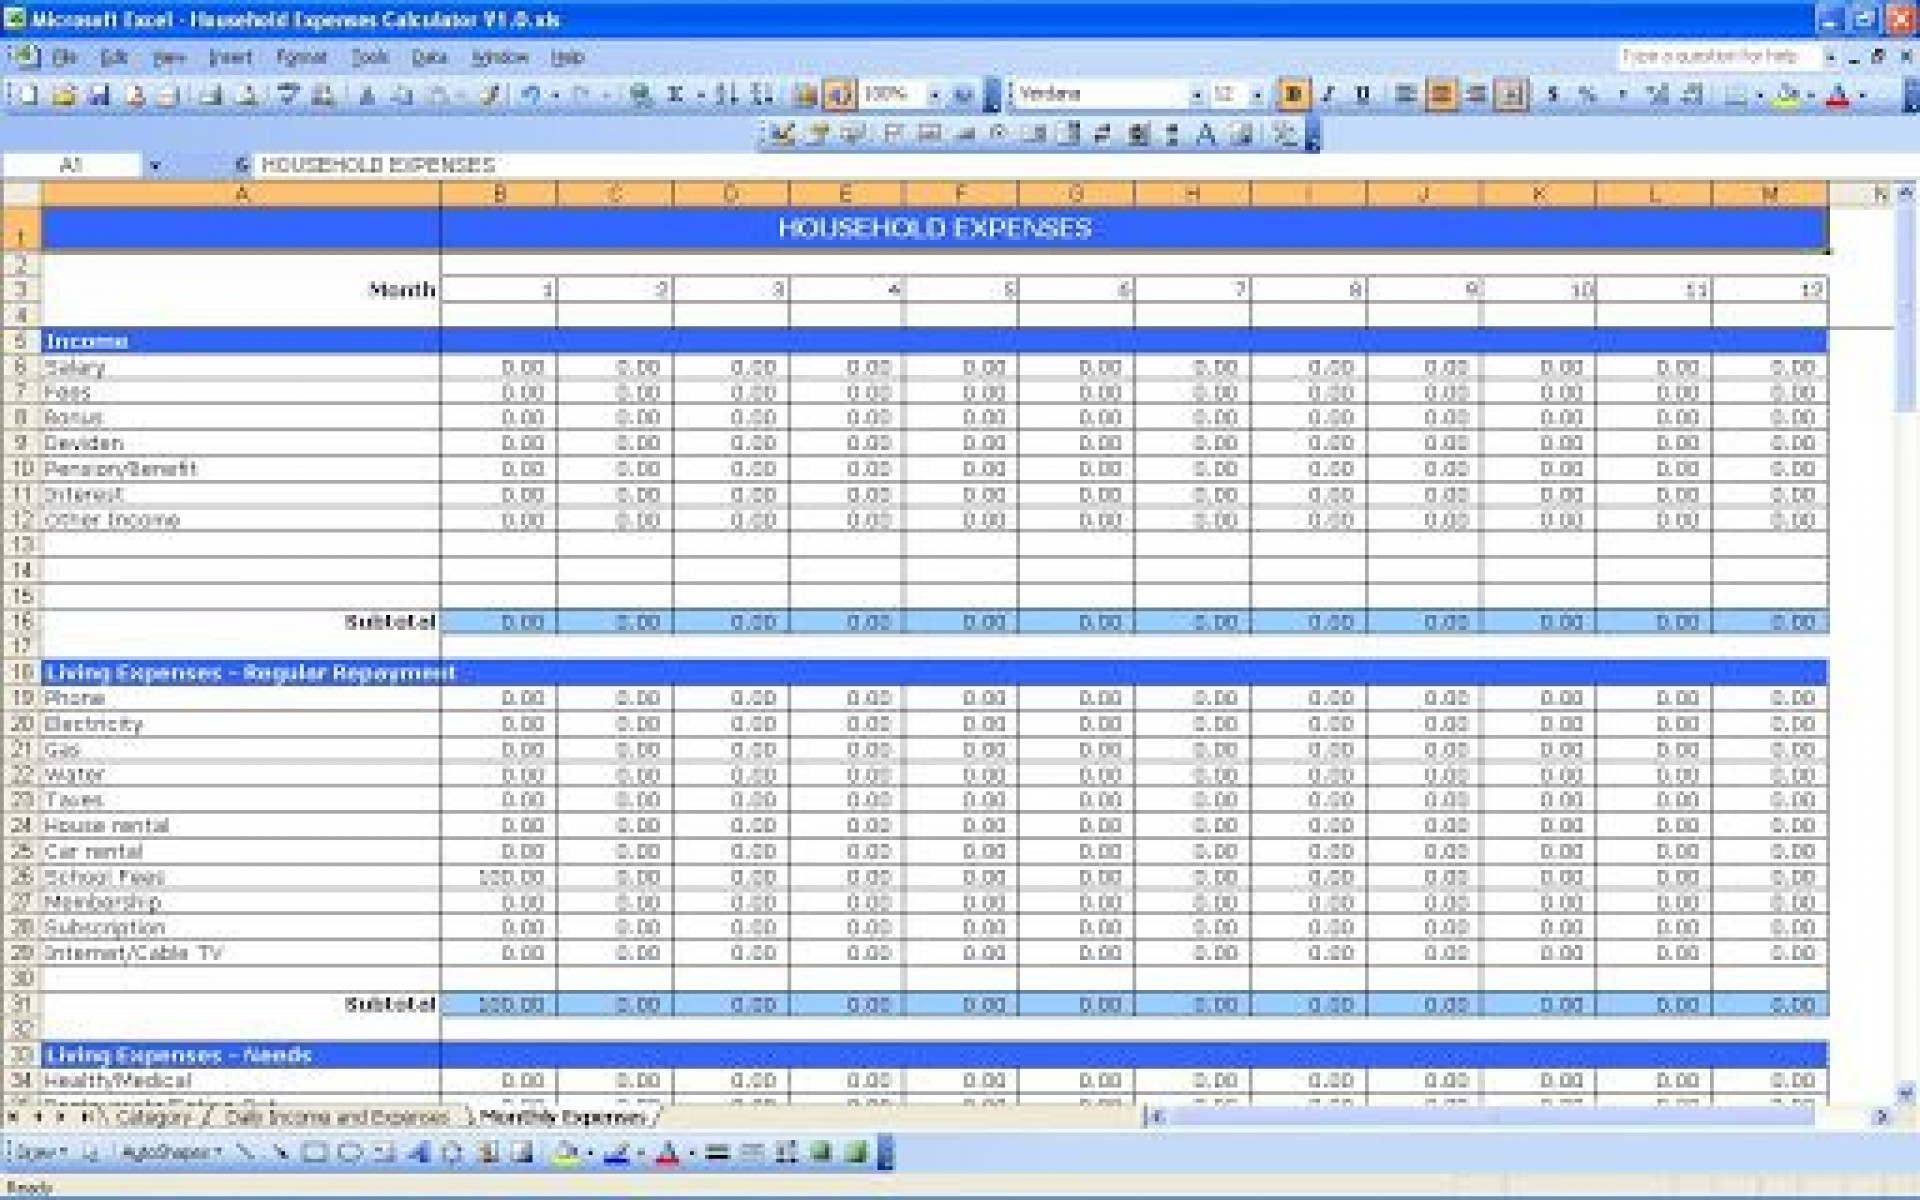 007 Impressive Personal Expense Spreadsheet Template Design  Monthly Budget Sheet Finance Uk Excel1920